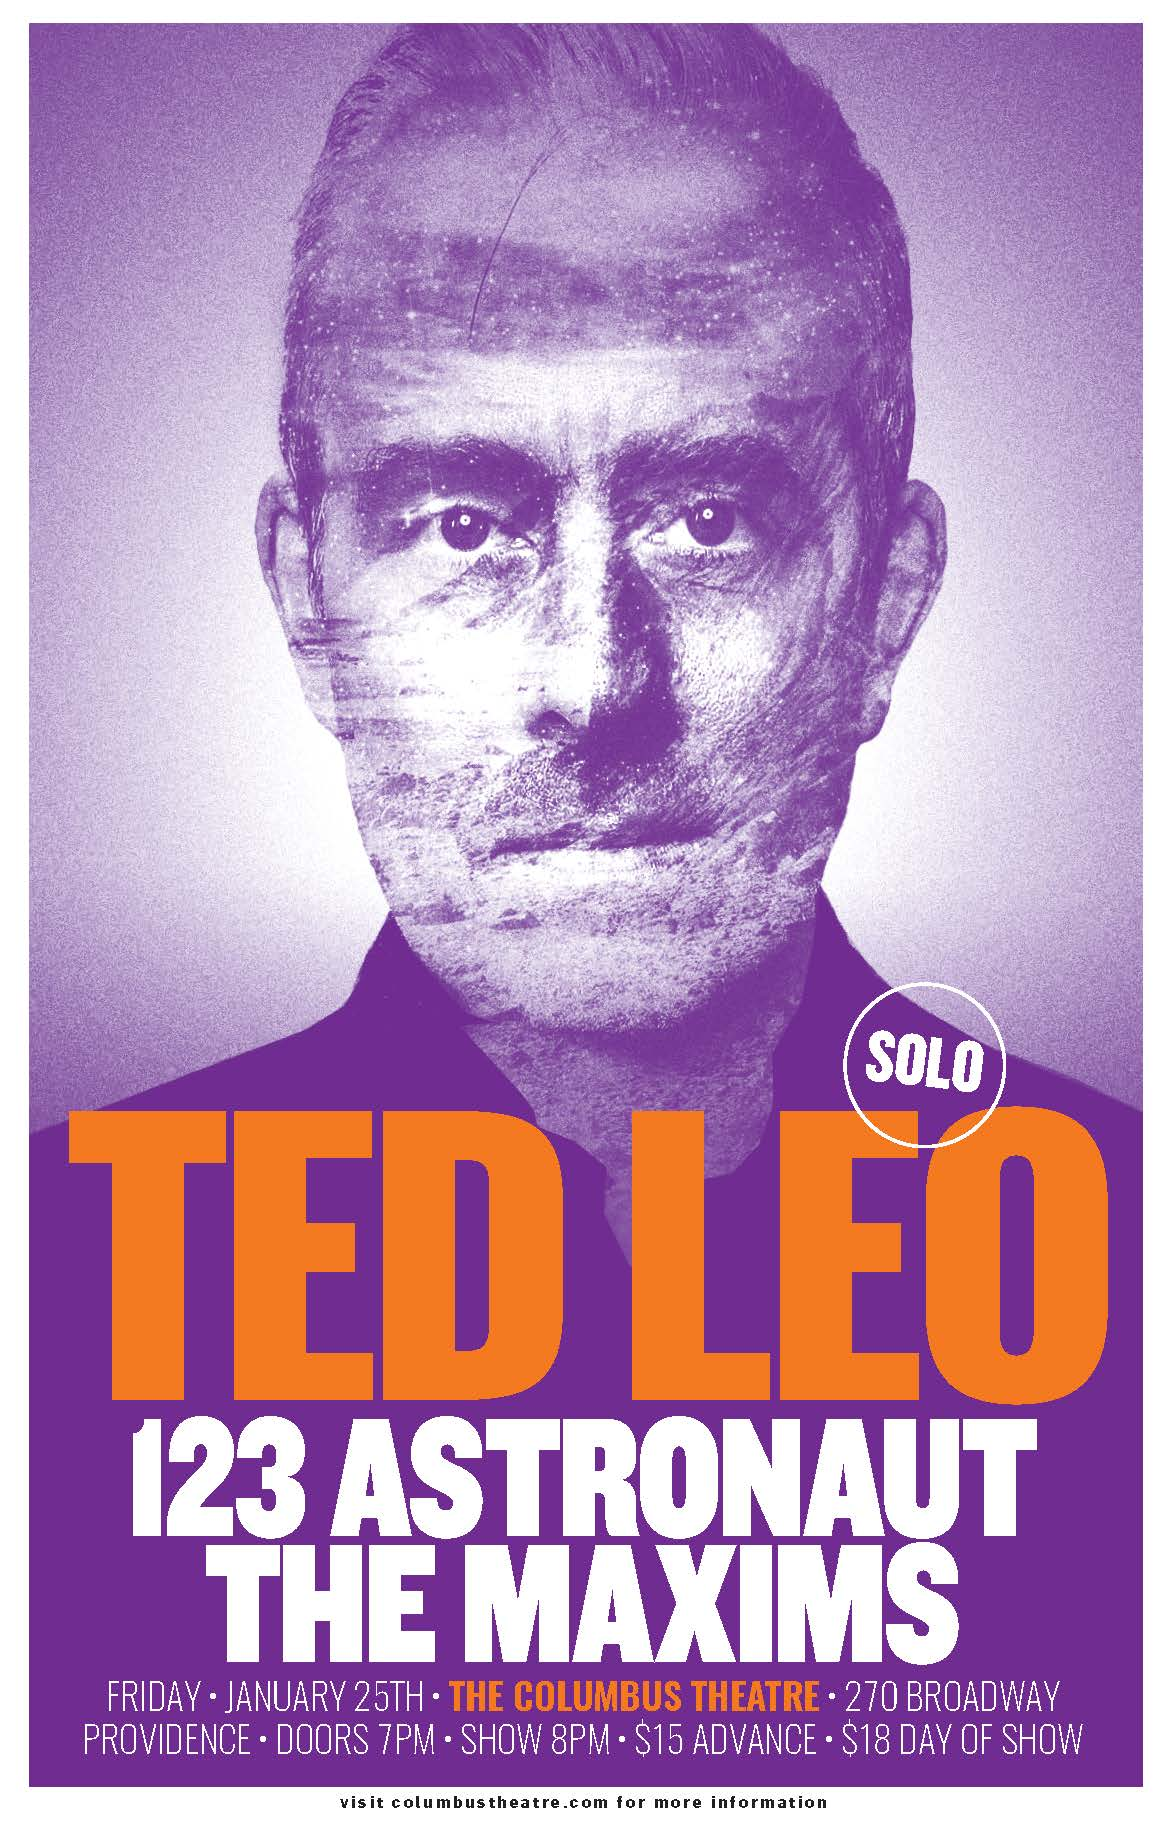 Show! - We're excited to be playing with the great Ted Leo at The Columbus Theatre in Providence, RI on Friday, January 25th. Also joining the bill is The Maxims, a great band from Boston. This is going to be a great show. Buy your tickets now.